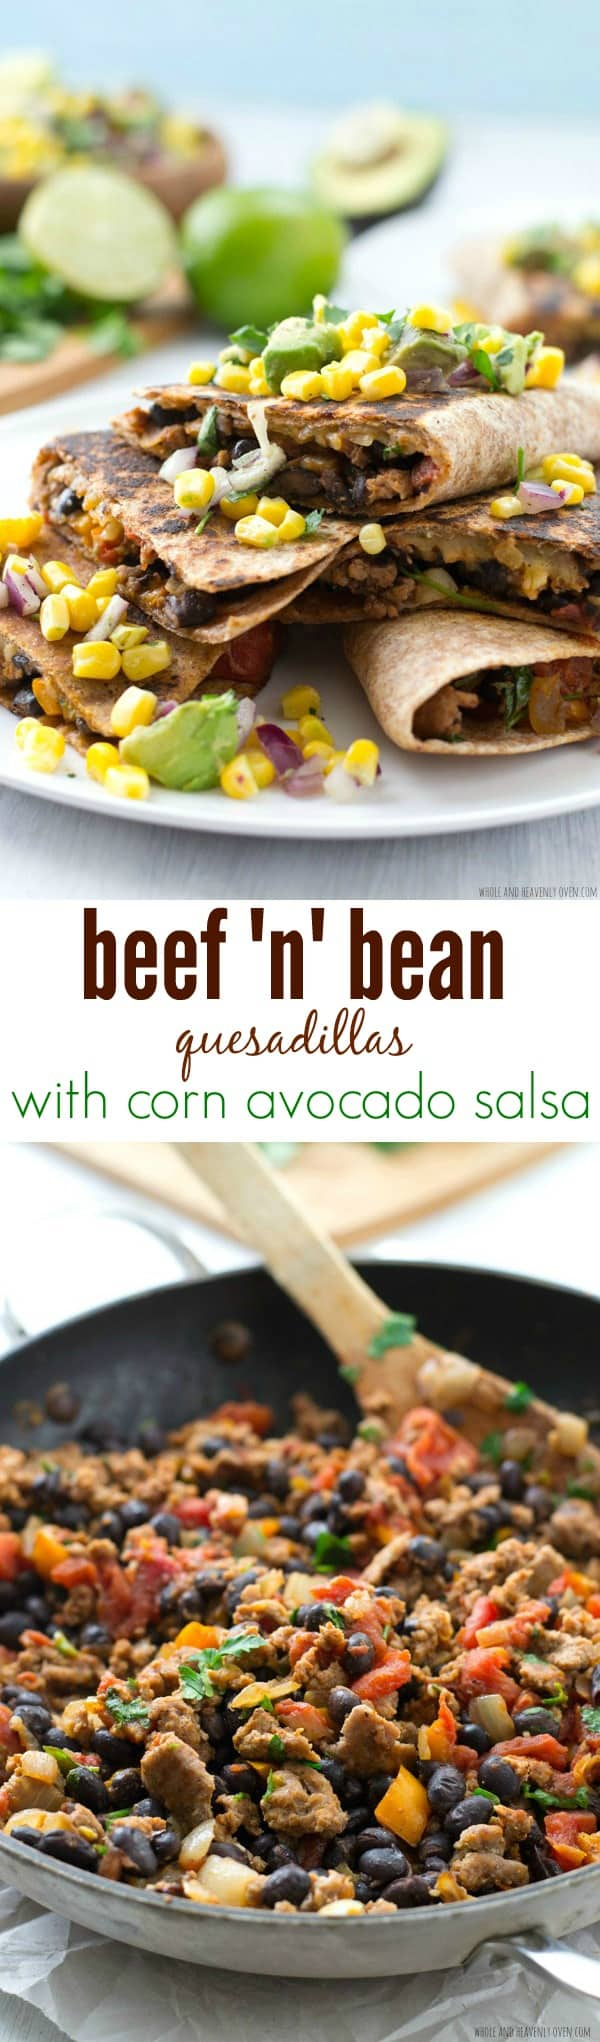 Mexican night just got 10x more fun with these family-approved quesadillas that are loaded with a cheesy beef 'n' bean filling and topped with lots of fresh corn-avocado salsa!